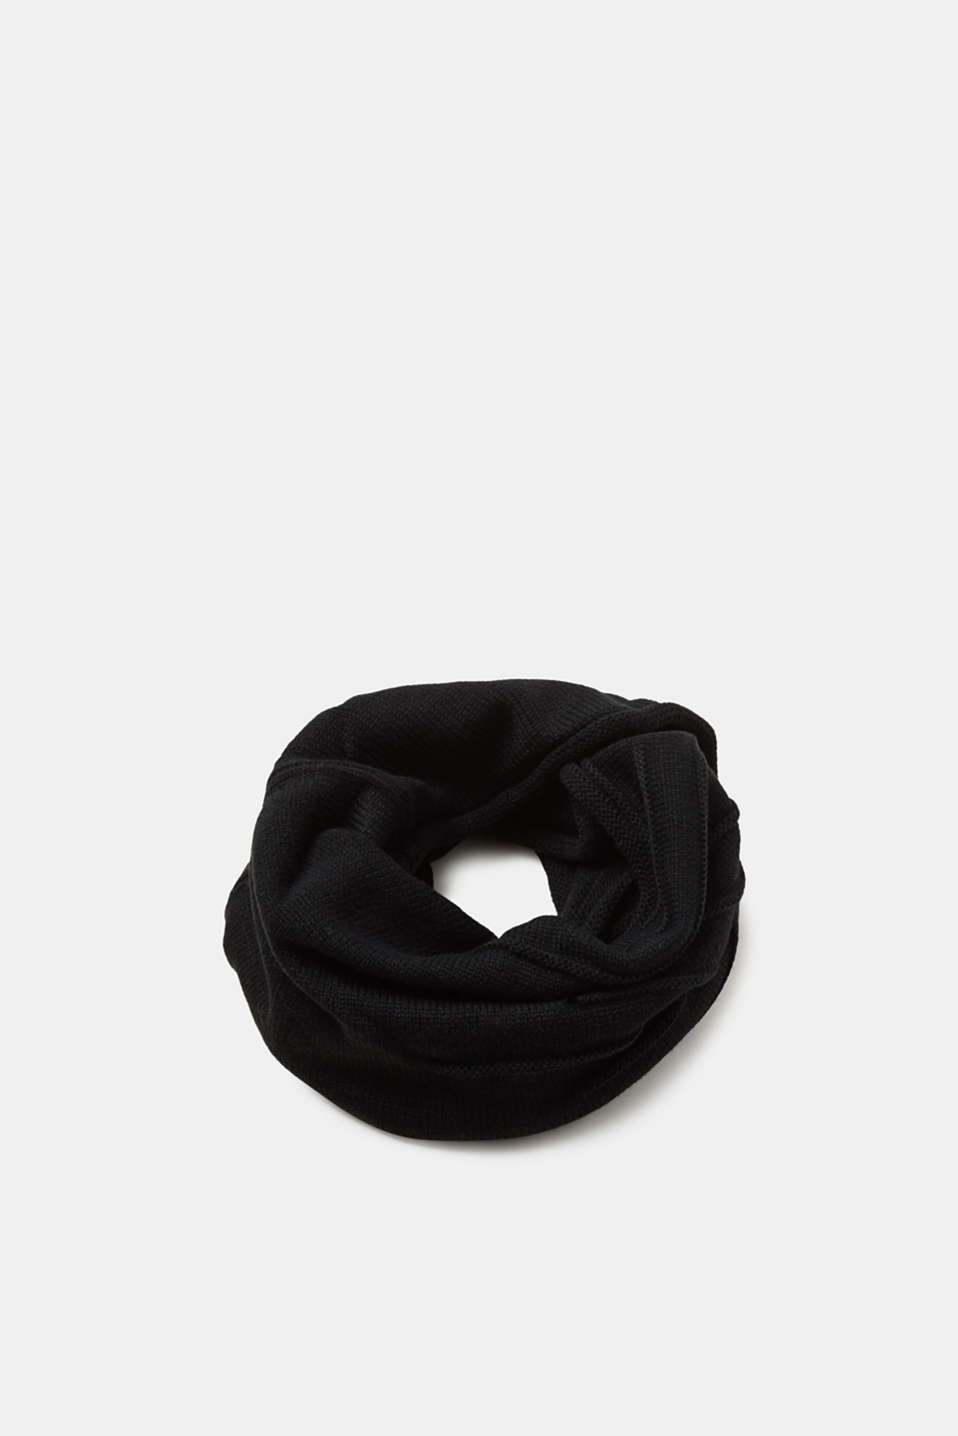 Esprit - Knit snood with a textured pattern